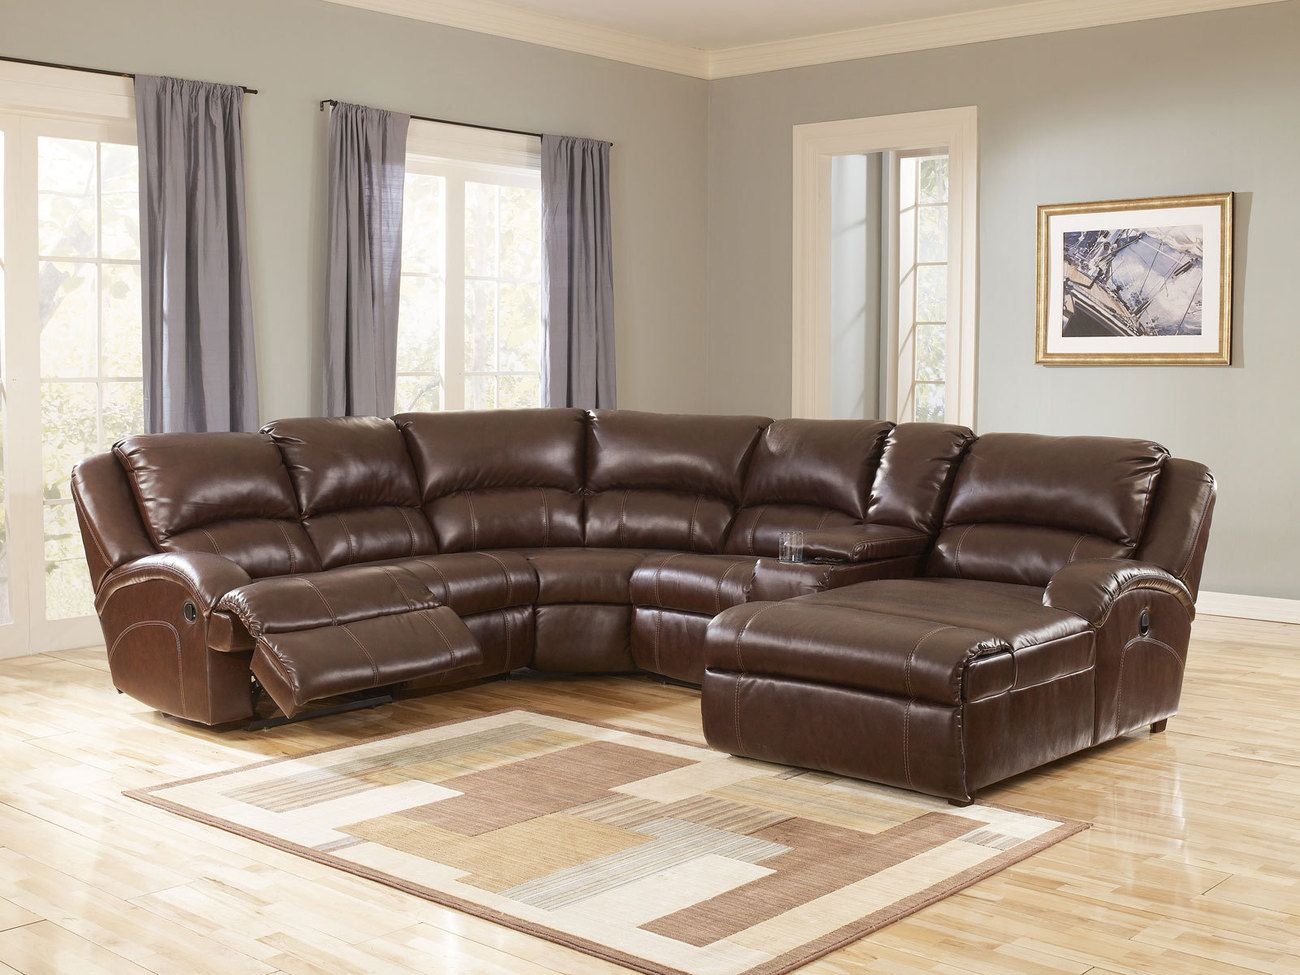 Leather Sectional Sofa With Chaise And Recliner Amazing Leather